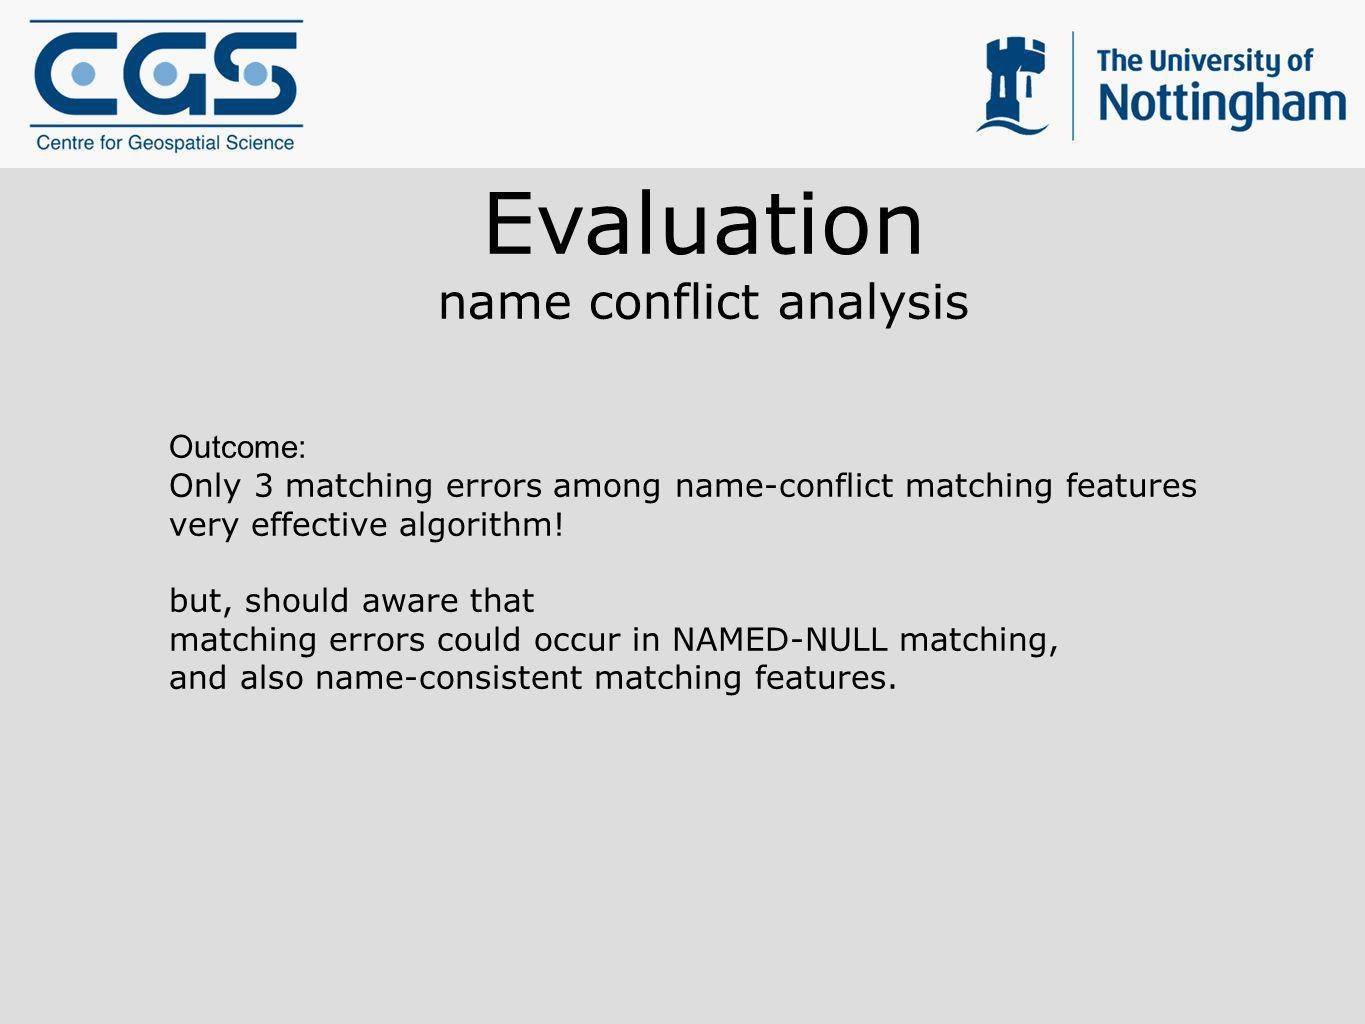 name conflict analysis